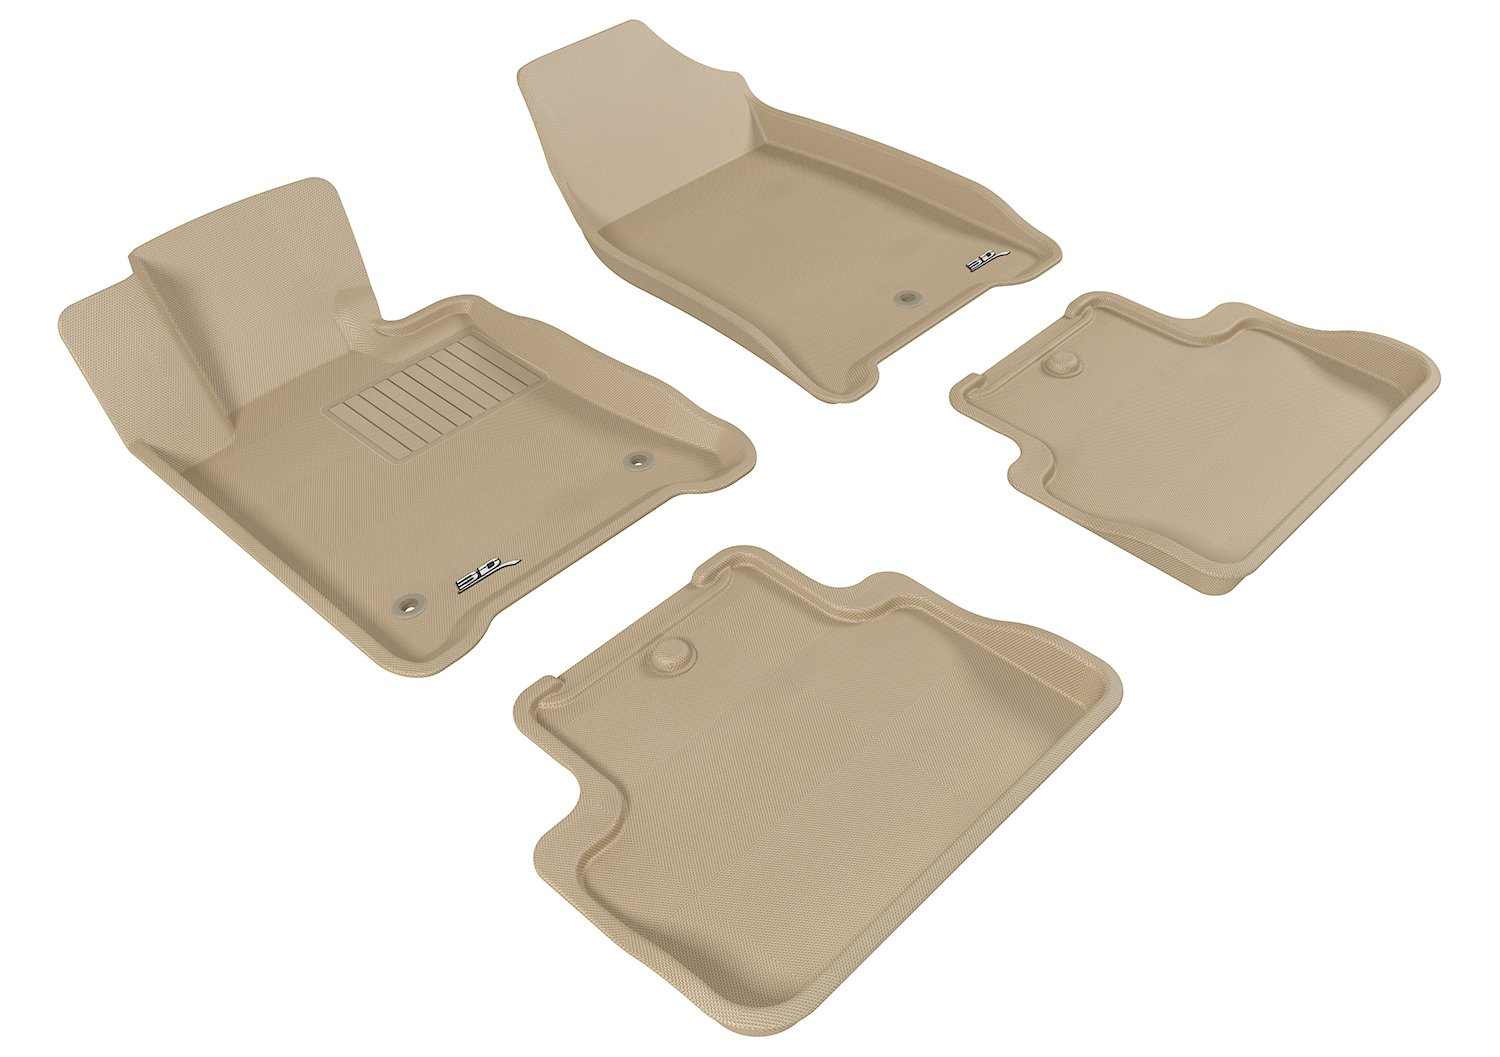 Kagu Rubber Tan 3D MAXpider Complete Set Custom Fit All-Weather Floor Mat for Select Chevrolet Malibu Models